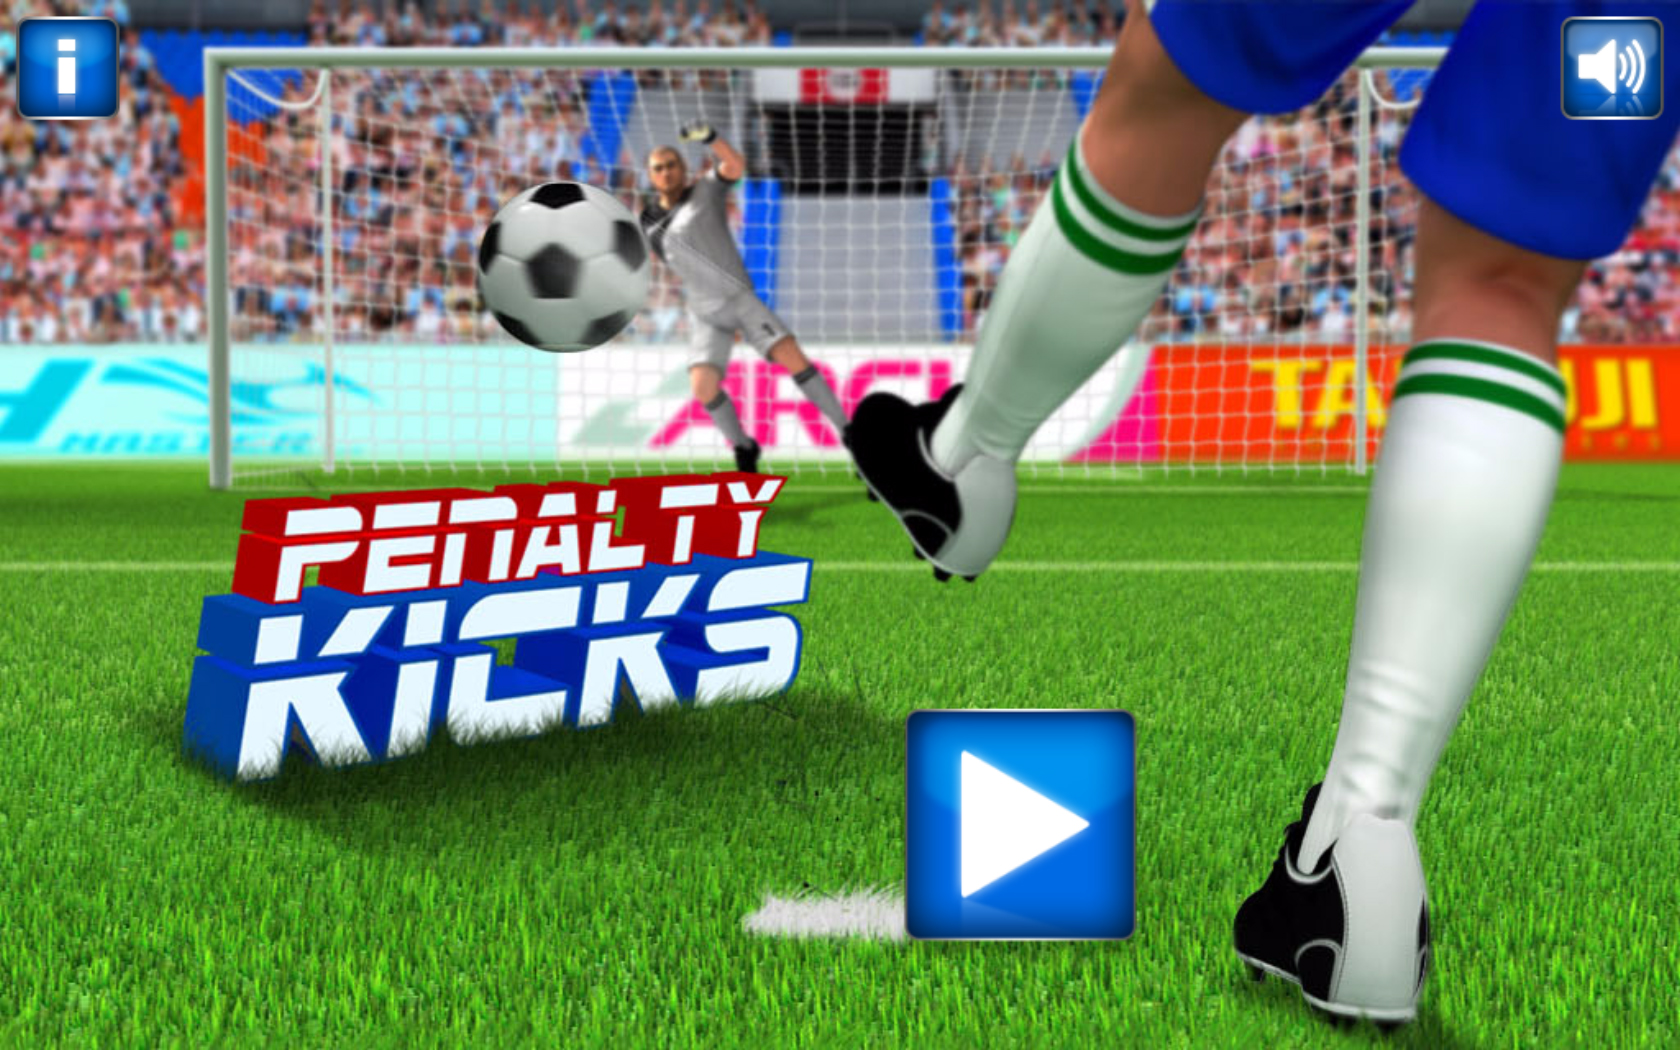 Football Game Online Football Games Online TOday For Kids Image Download  For PC Clipart 2014 Logo Designes Photos Images Pics